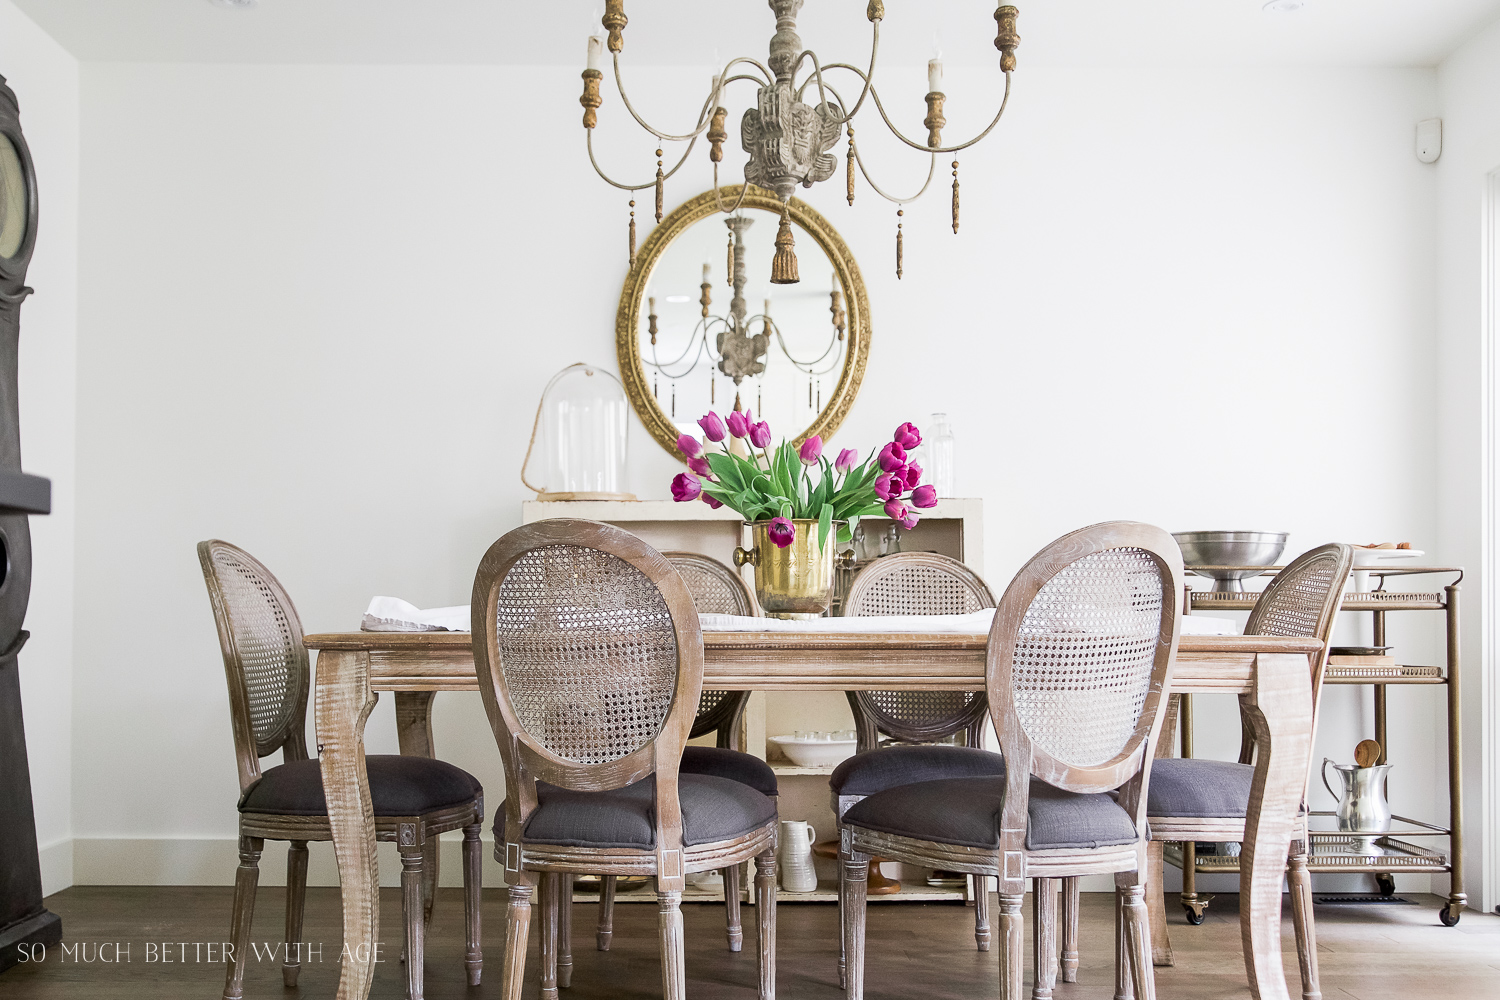 Marvelous French Vintage Dining Room/French Table And Chandelier   So Much Better  With Age